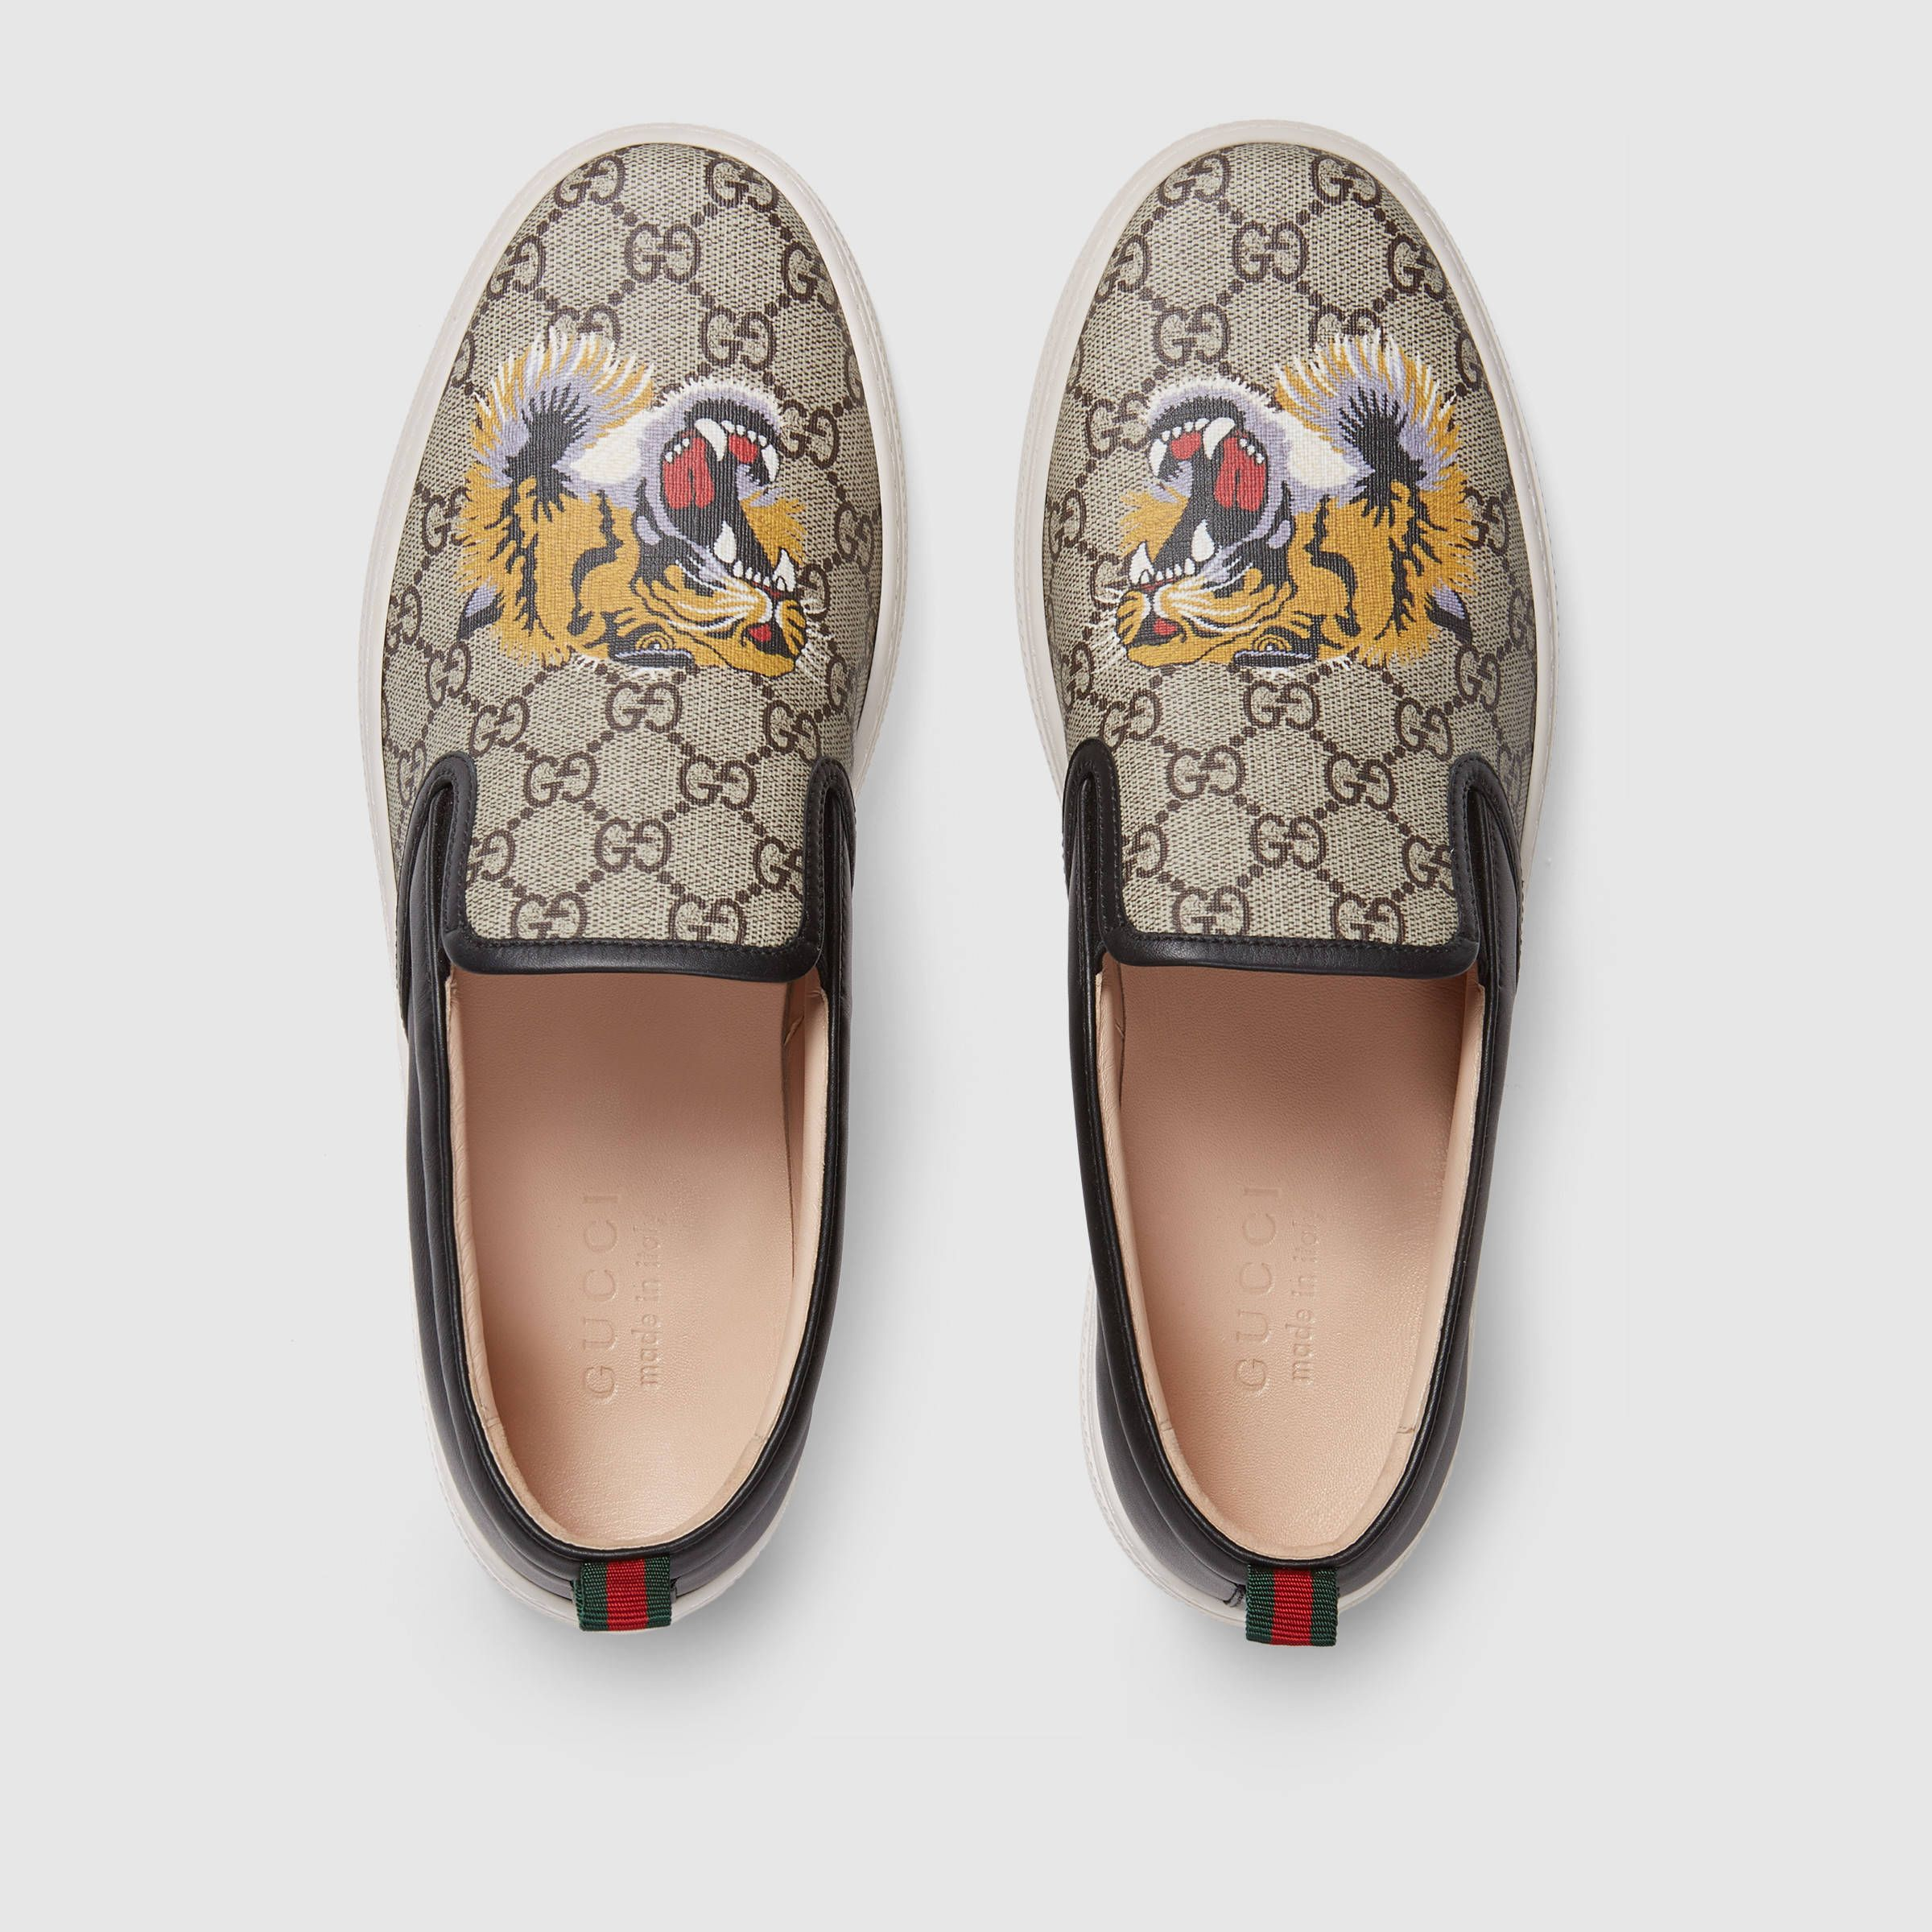 d8953693a38 Gucci GG Supreme tiger slip-on sneaker Detail 3